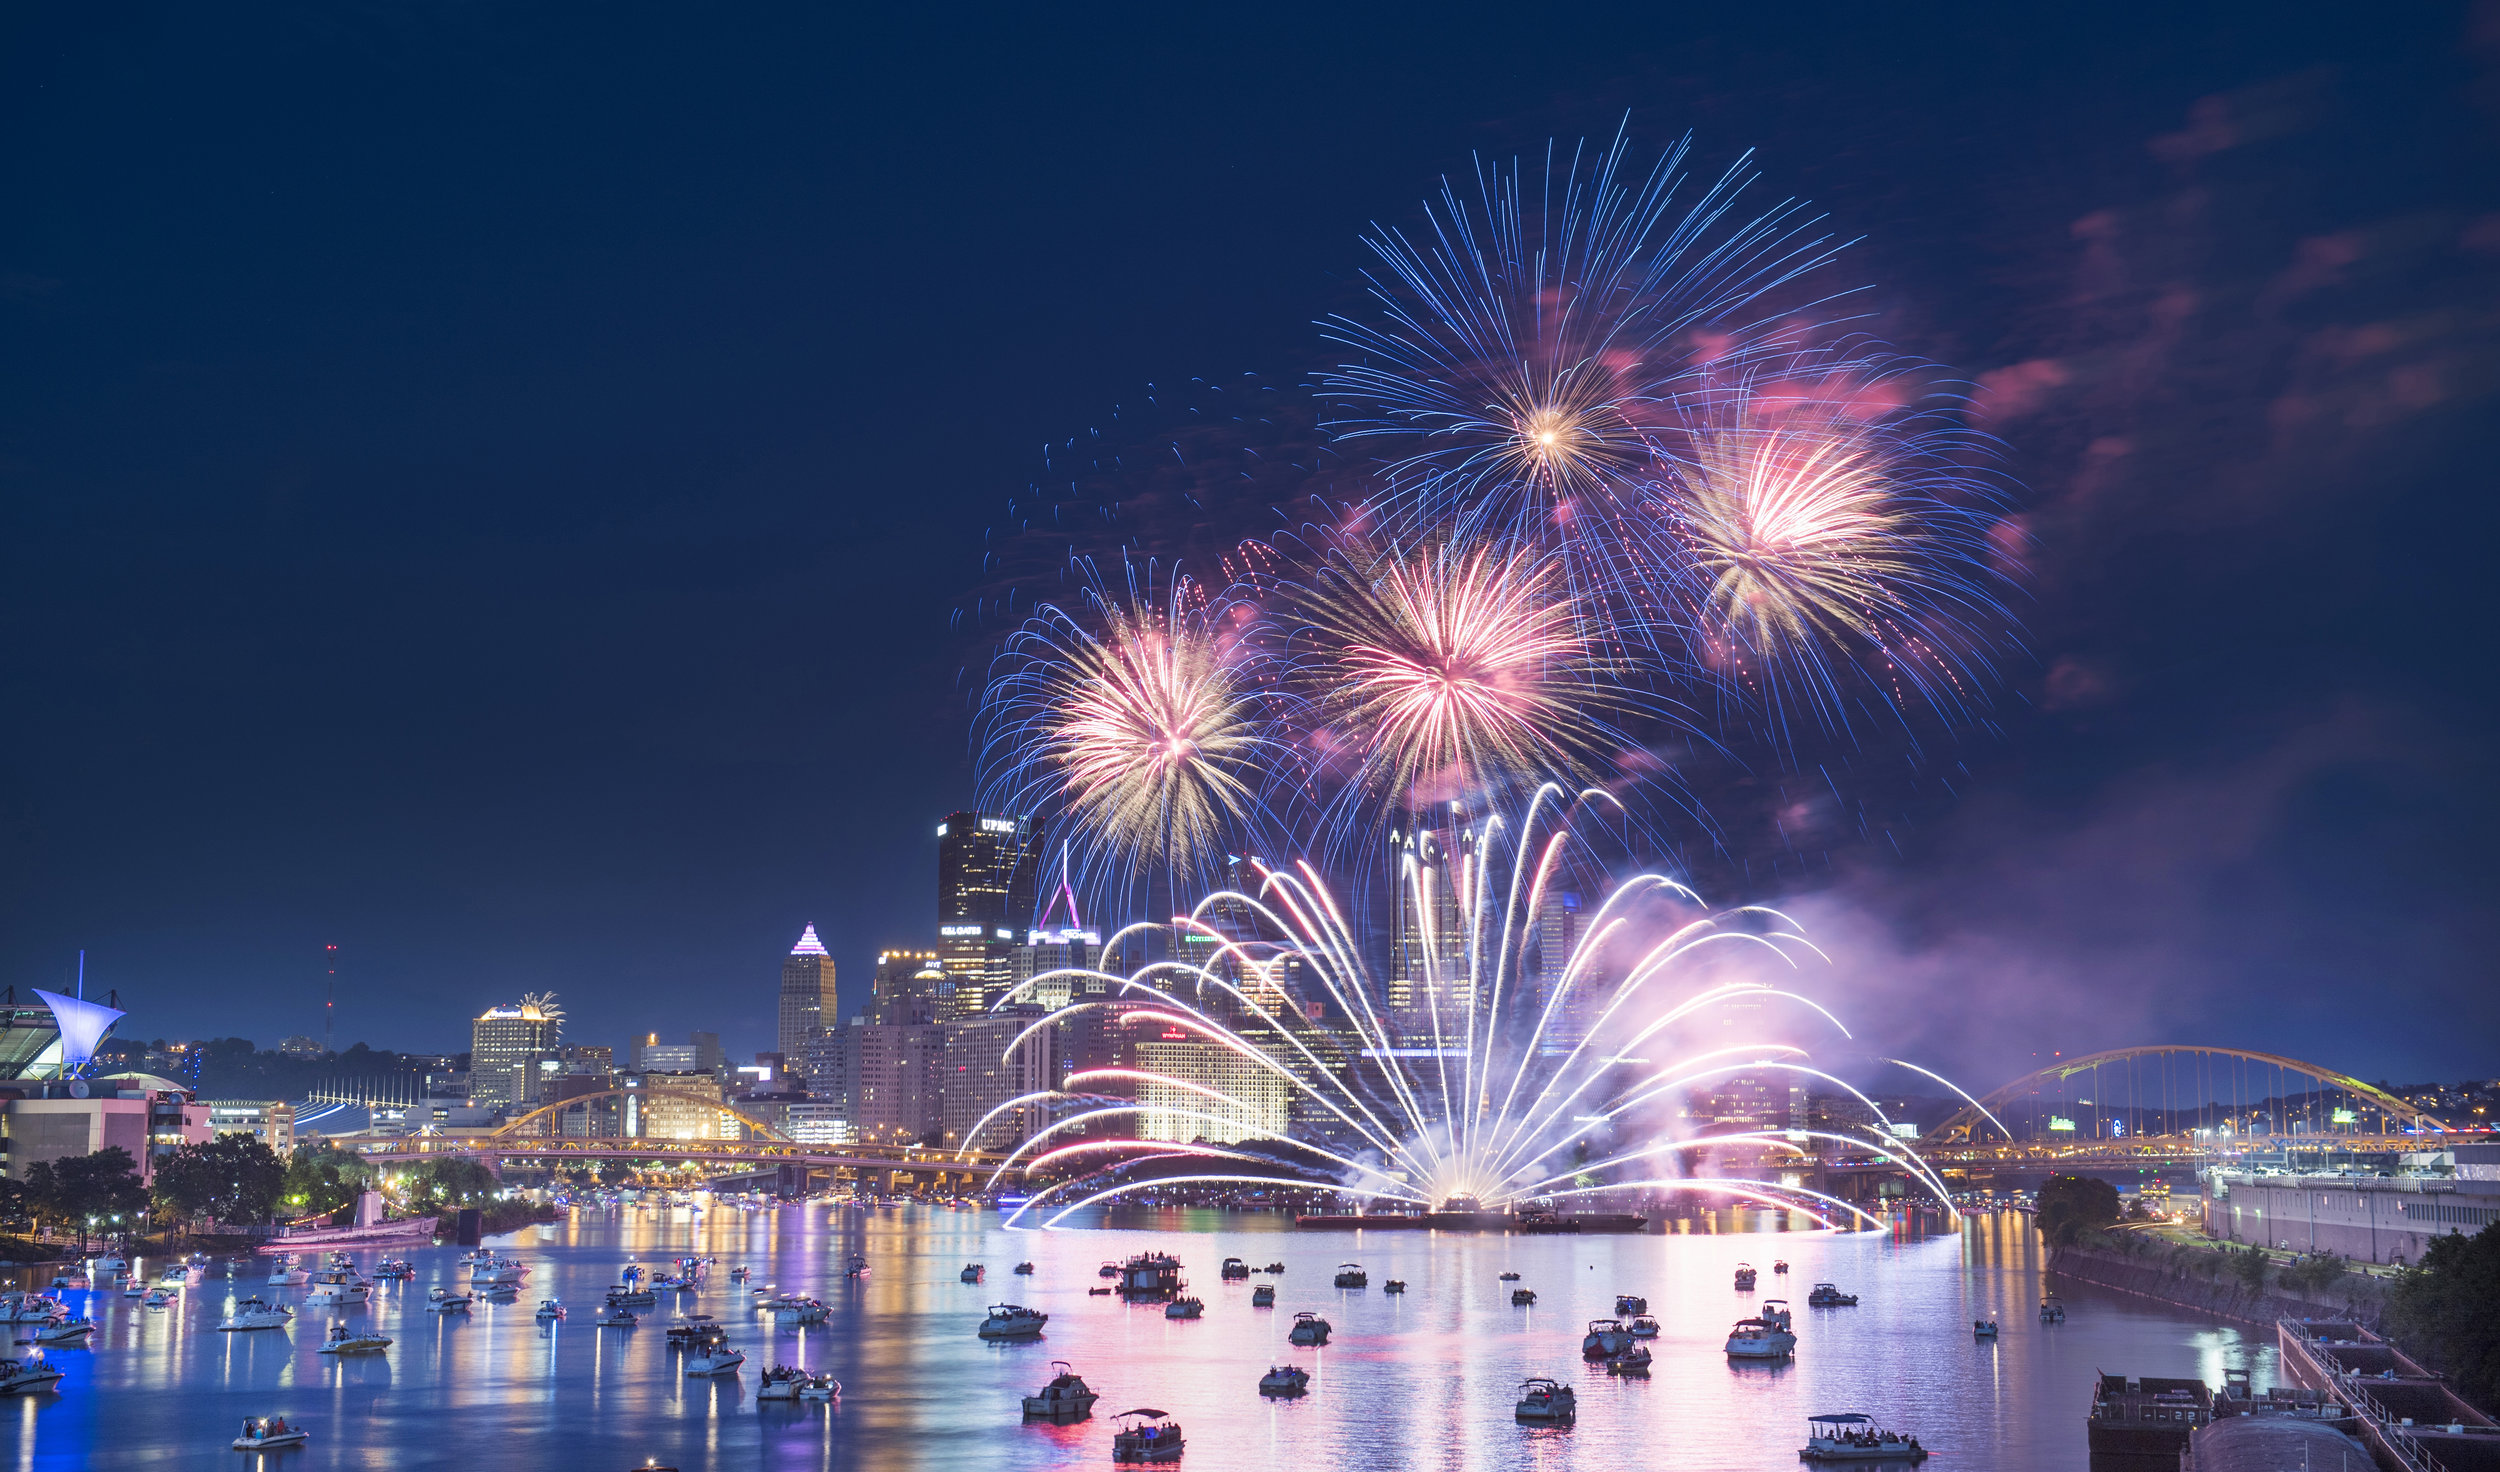 EQT Flashes of Freedom Fireworks shoot over Pittsburgh's confluence on Independence Day, Tuesday, July 4, 2017 as seen from the West End Bridge. (Steph Chambers/Post-Gazette)